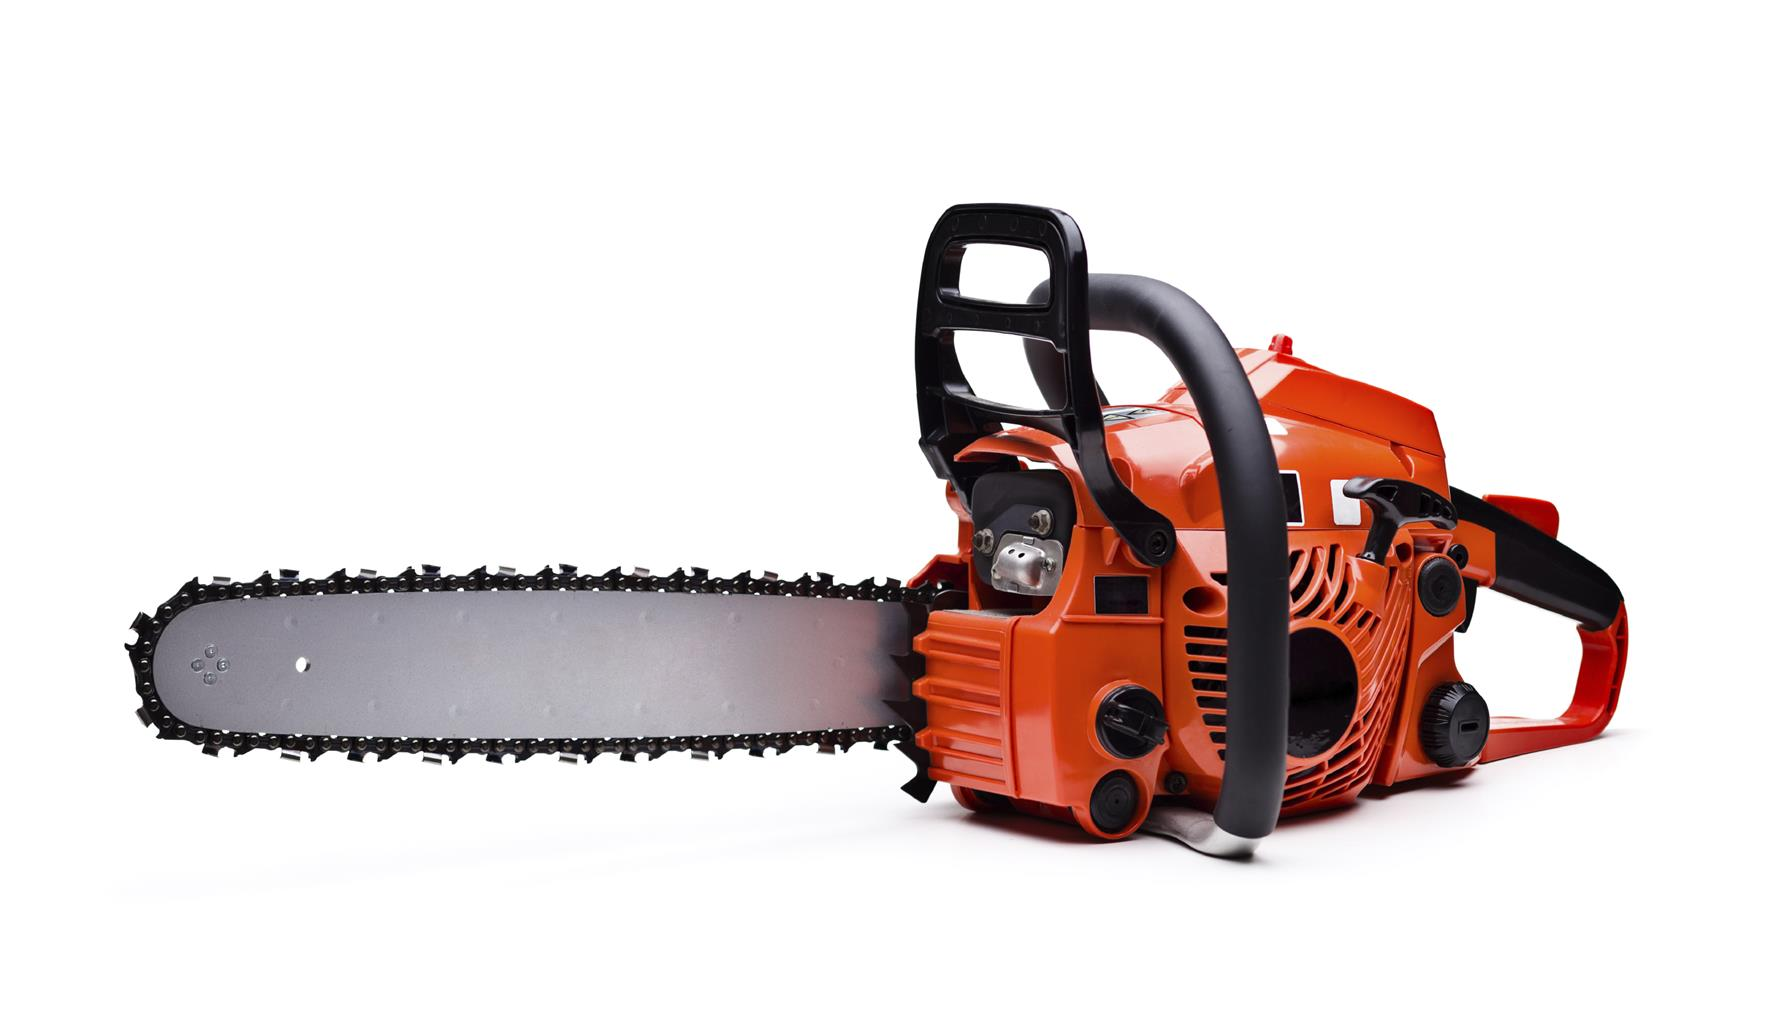 Two Stroke, Petrol, CHAIN SAW 45 CC Price Incl Vat